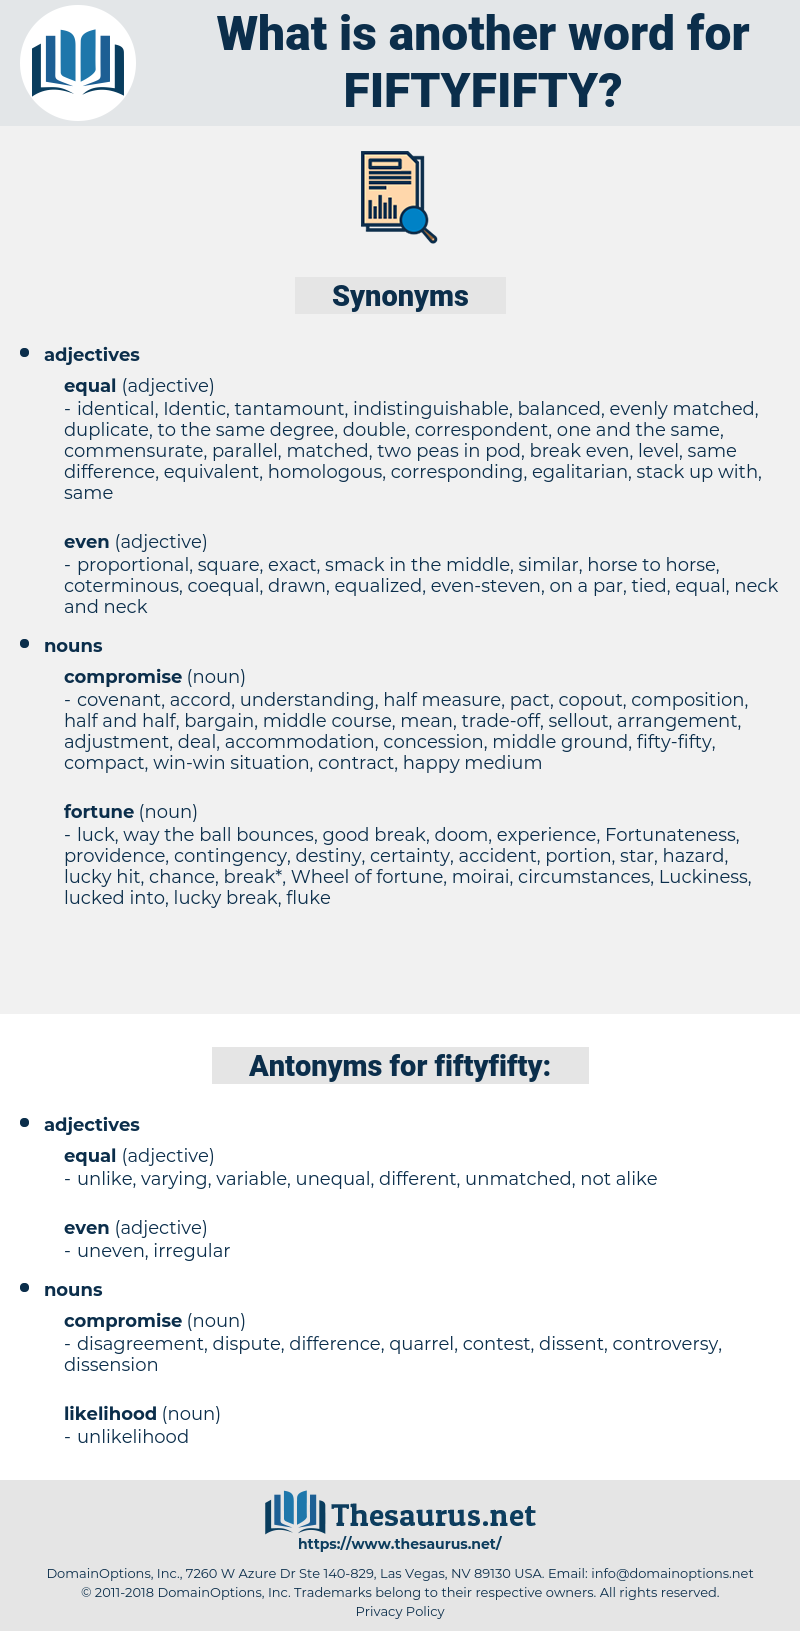 fiftyfifty, synonym fiftyfifty, another word for fiftyfifty, words like fiftyfifty, thesaurus fiftyfifty